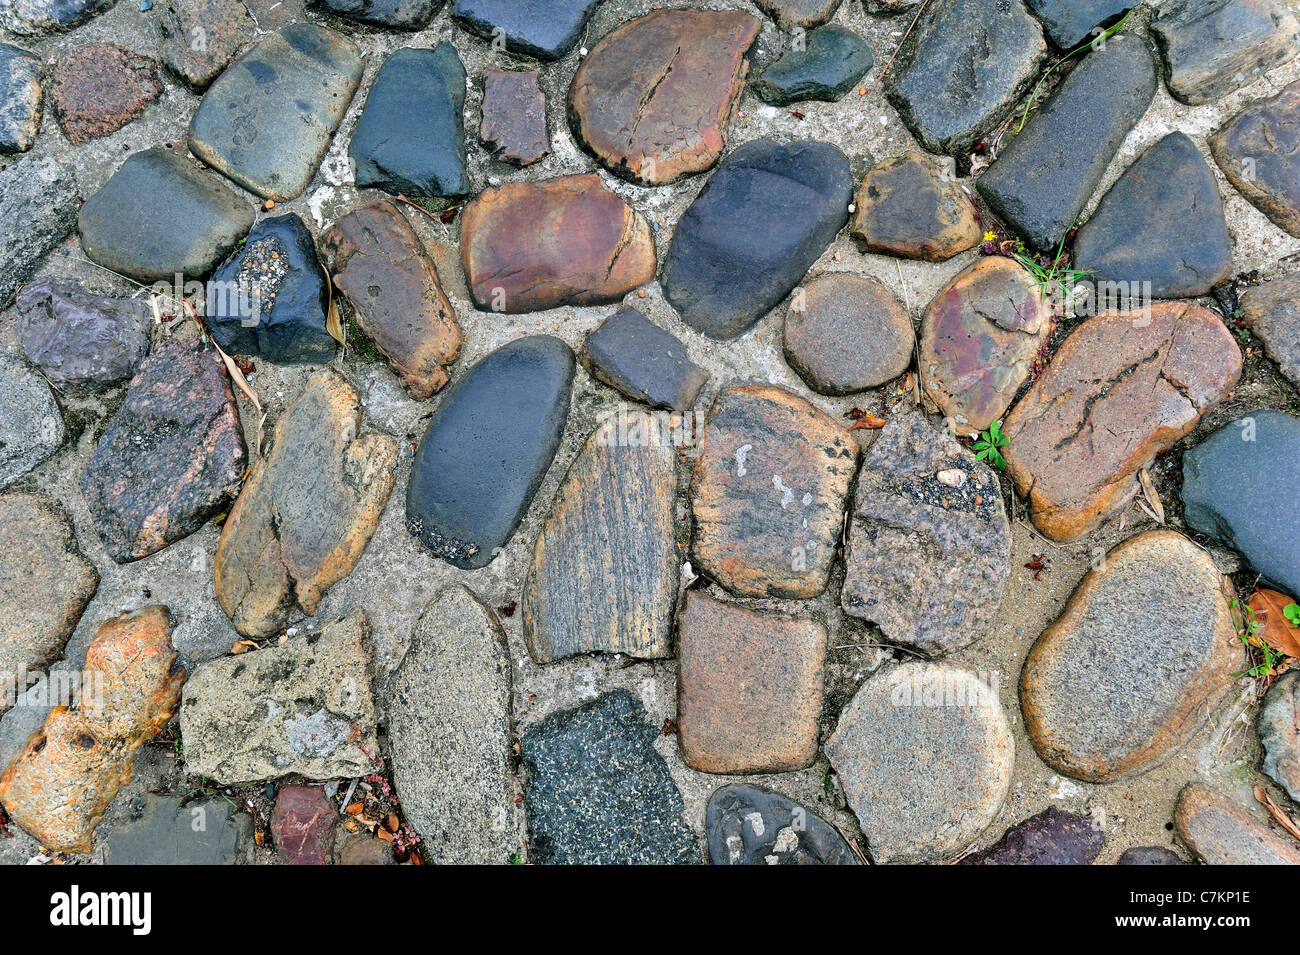 Paved road made of cobblestones, France - Stock Image